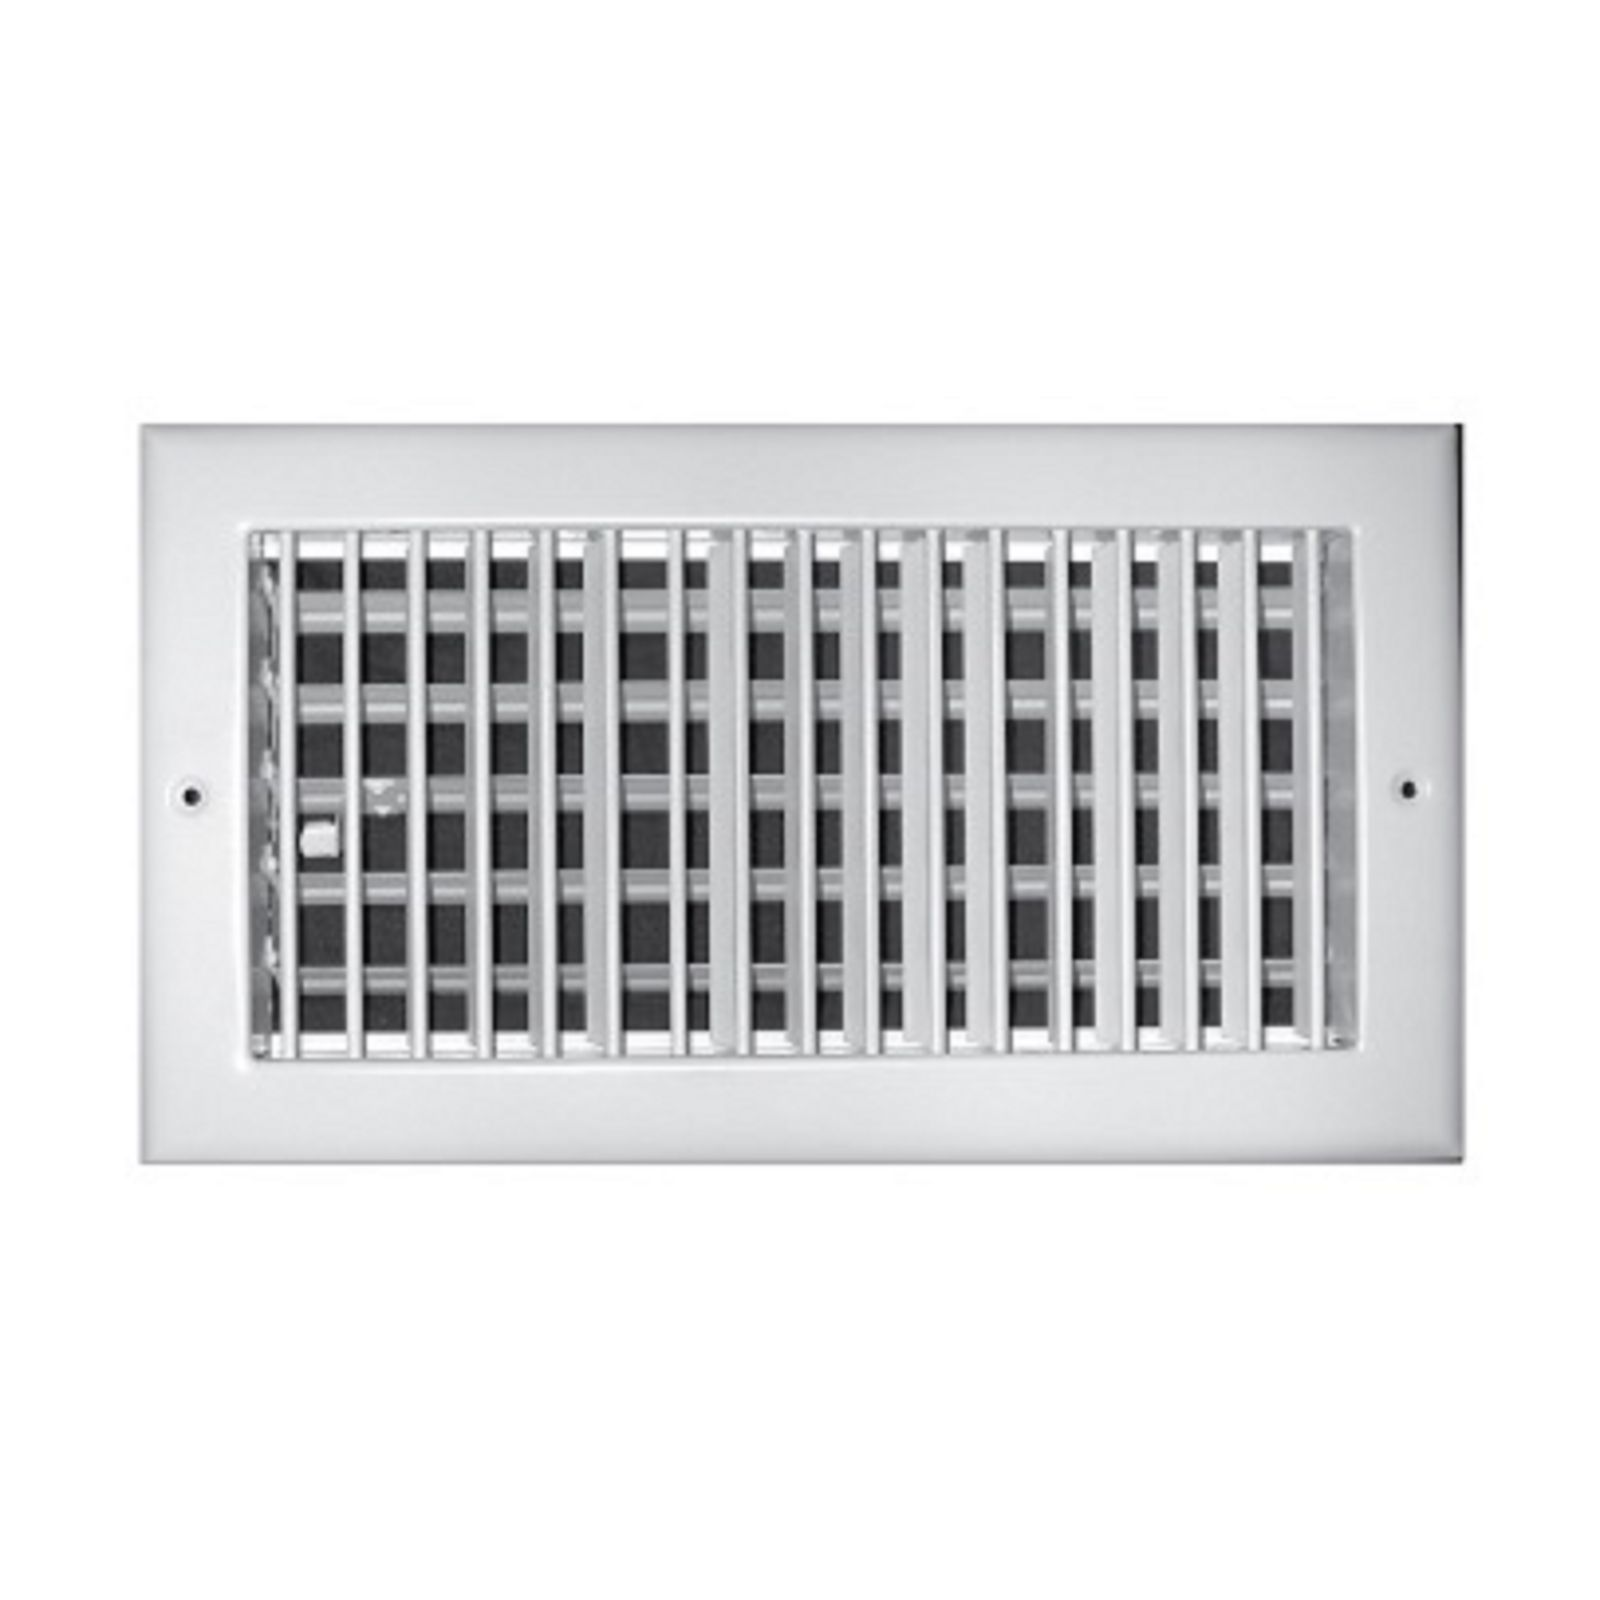 "TRUaire A210VM 10X04 - Aluminum Adjustable 1-Way Wall/Ceiling Register, Vertical, Multi Shutter Damper, White, 10"" X 04"""